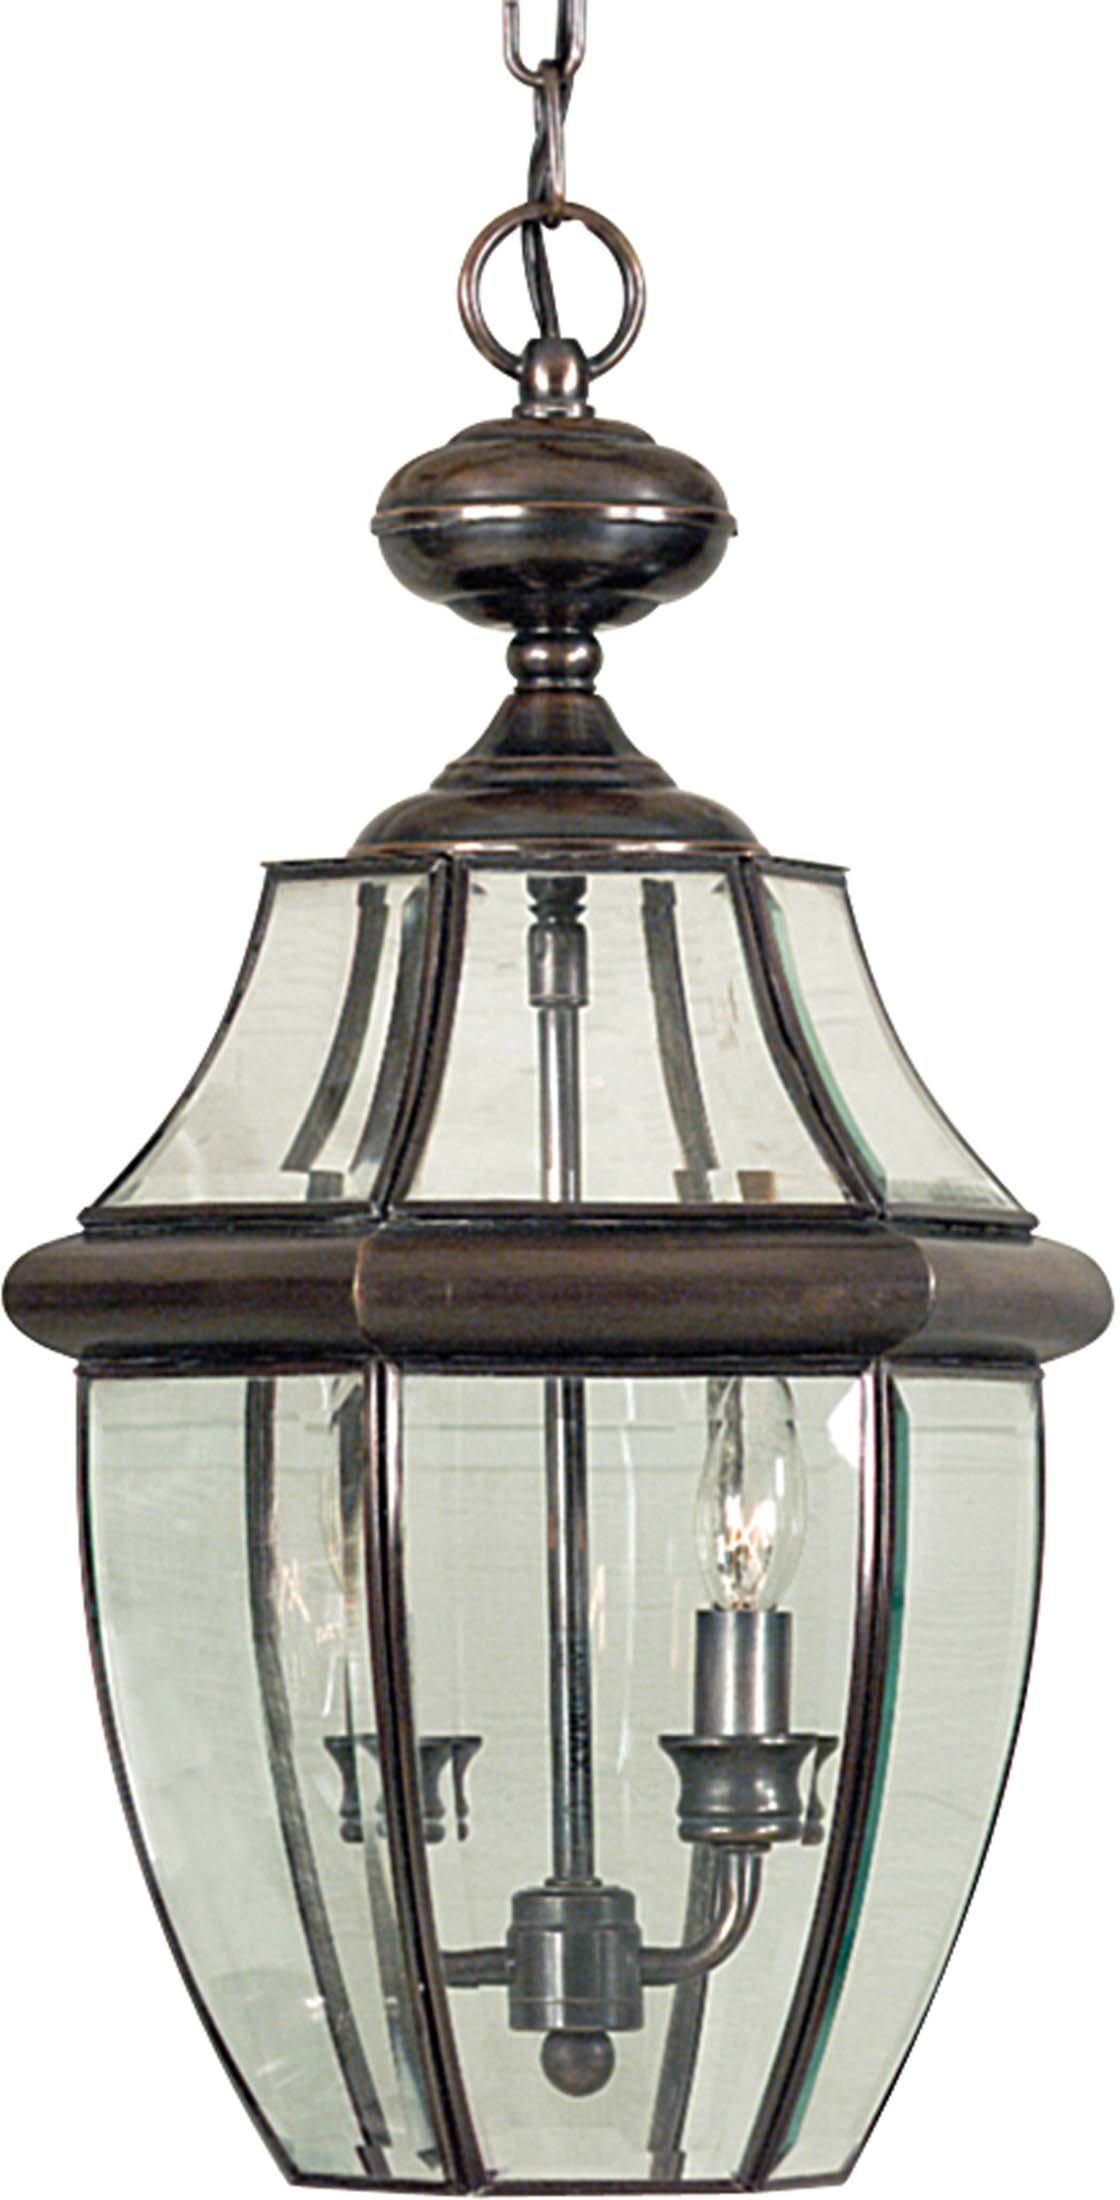 Quoizel NY1178AC 2-Light Newbury Outdoor Lantern in Aged Copper